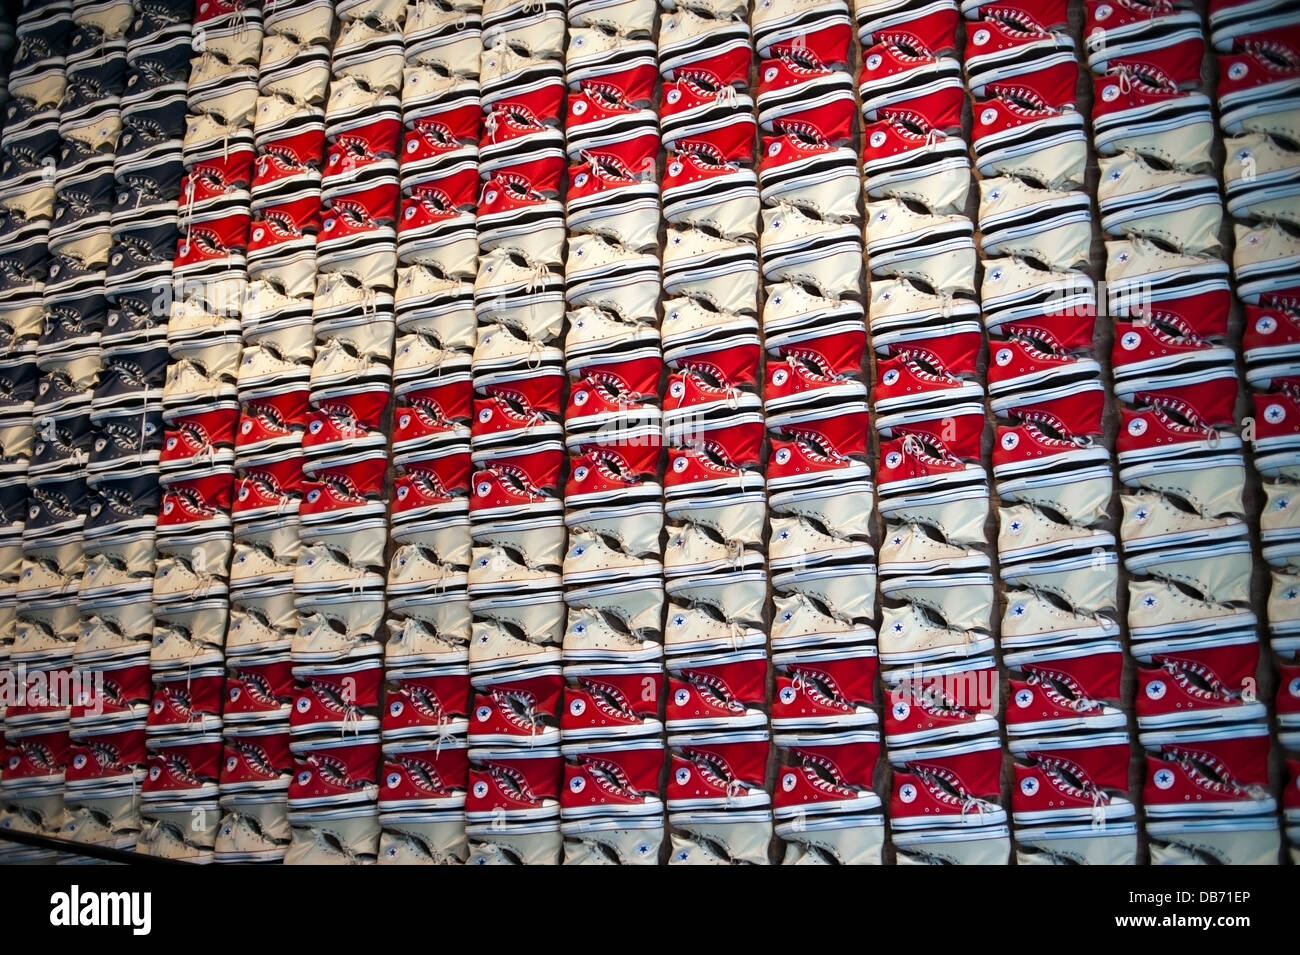 Converse Chuck Taylor All Stars tennis shoes displayed on the wall at the Converse Shoe store in New York City - Stock Image